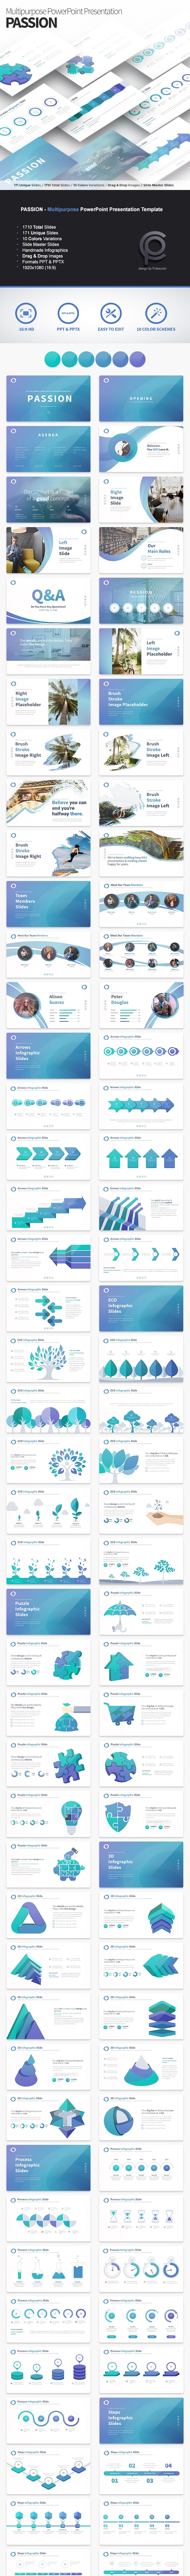 PASSION - Multipurpose PowerPoint Presentation Template - Business PowerPoint Templates